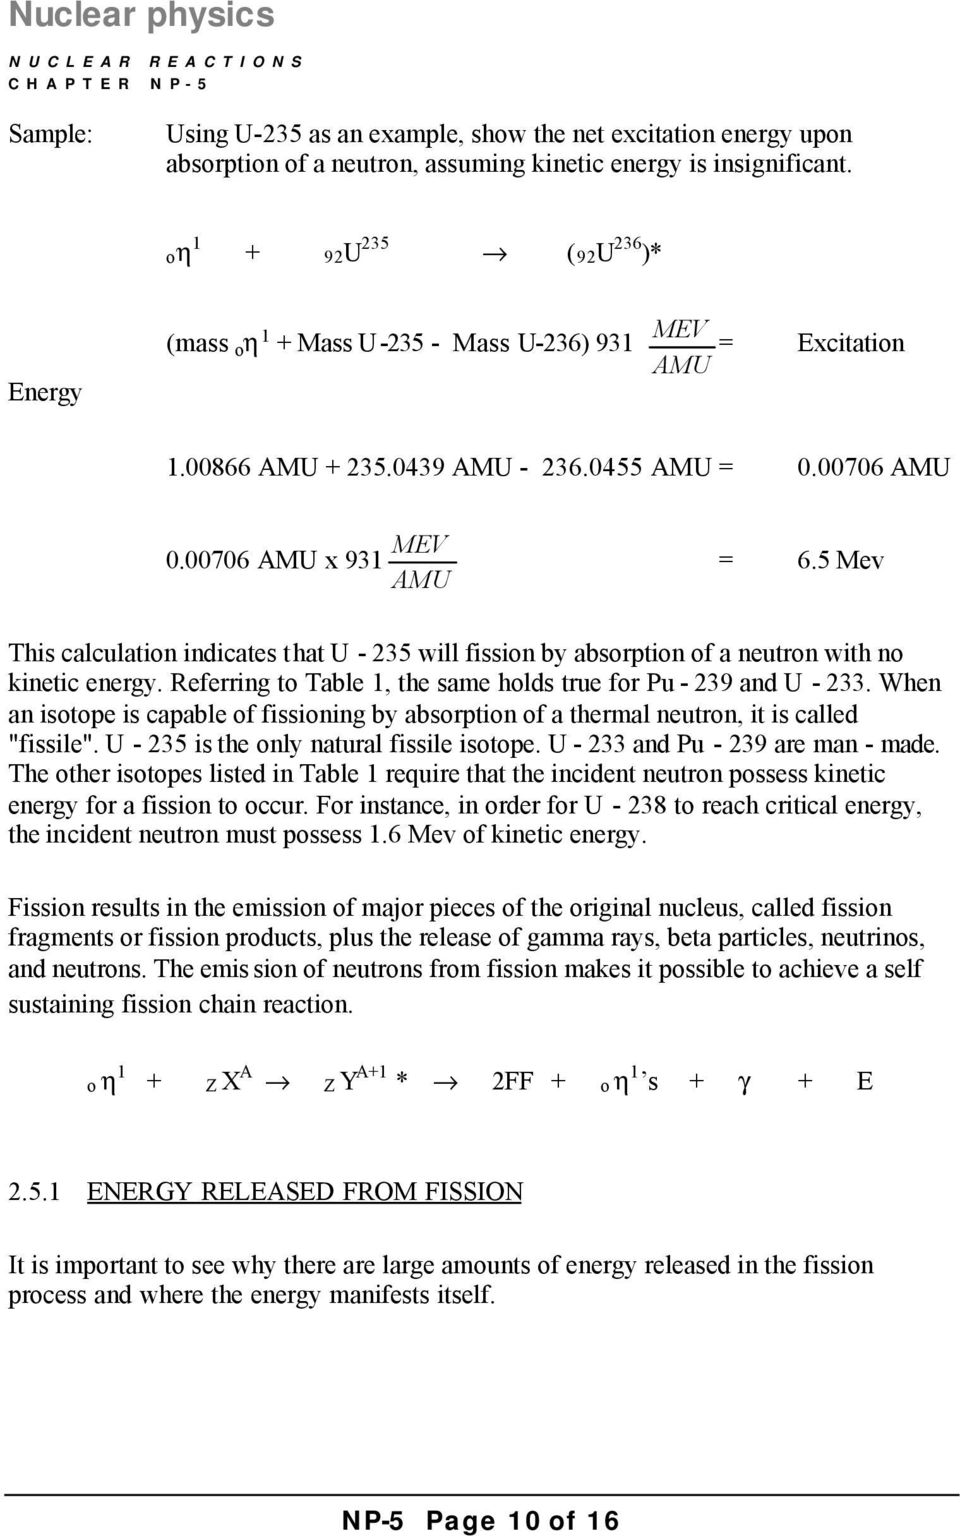 5 Mev This calculation indicates that U - 235 will fission by absorption of a neutron with no kinetic energy. Referring to Table 1, the same holds true for Pu - 239 and U - 233.